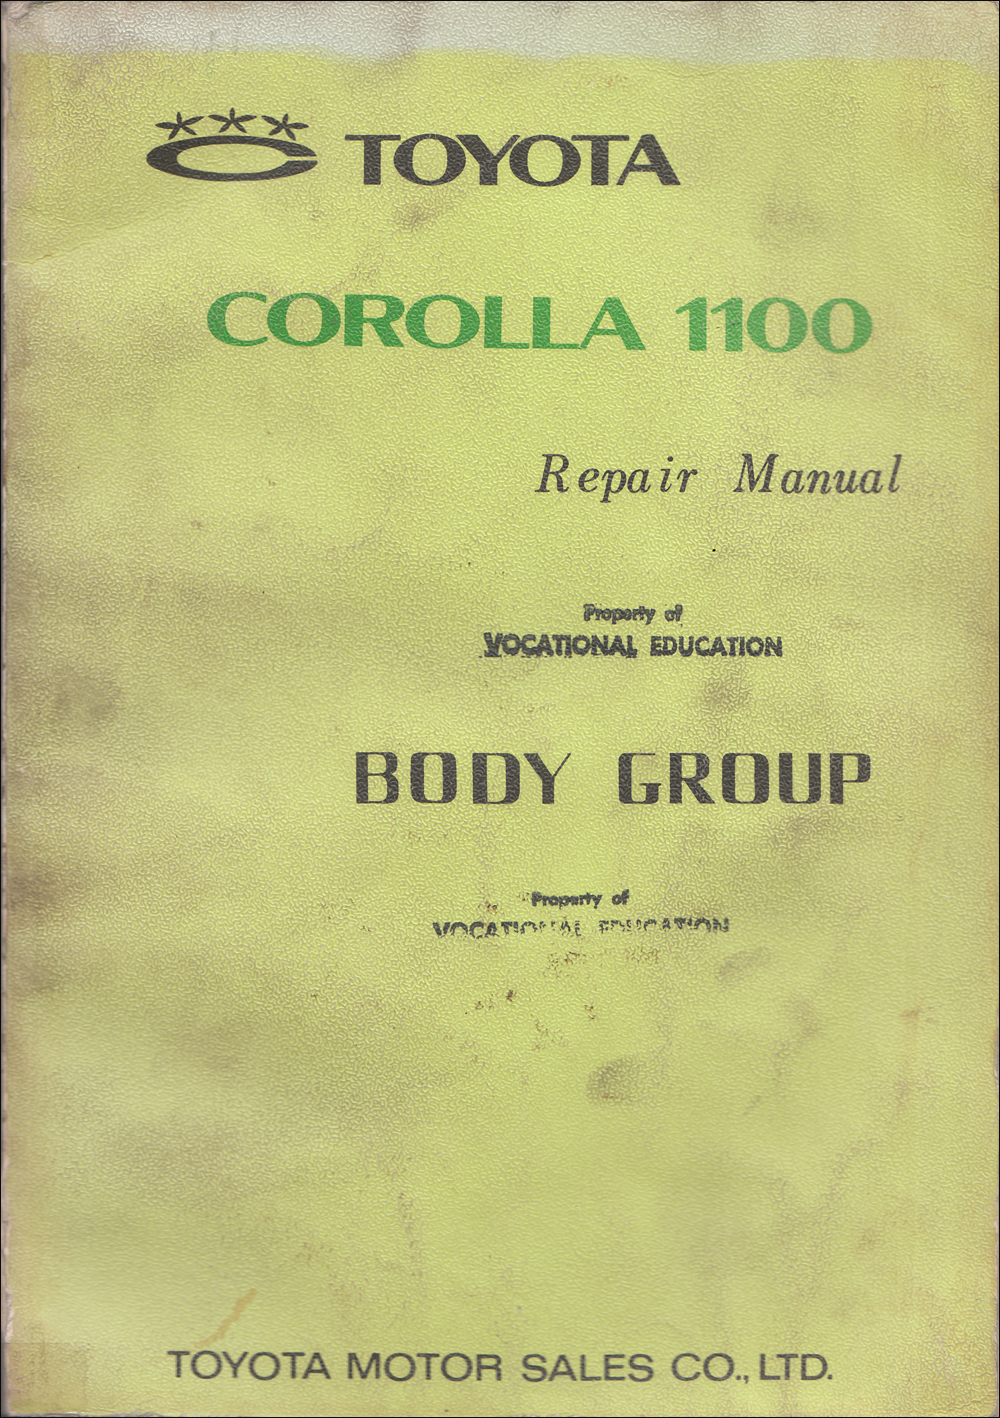 1968-1970 Toyota Corolla Body Repair Manual Original No. 98412